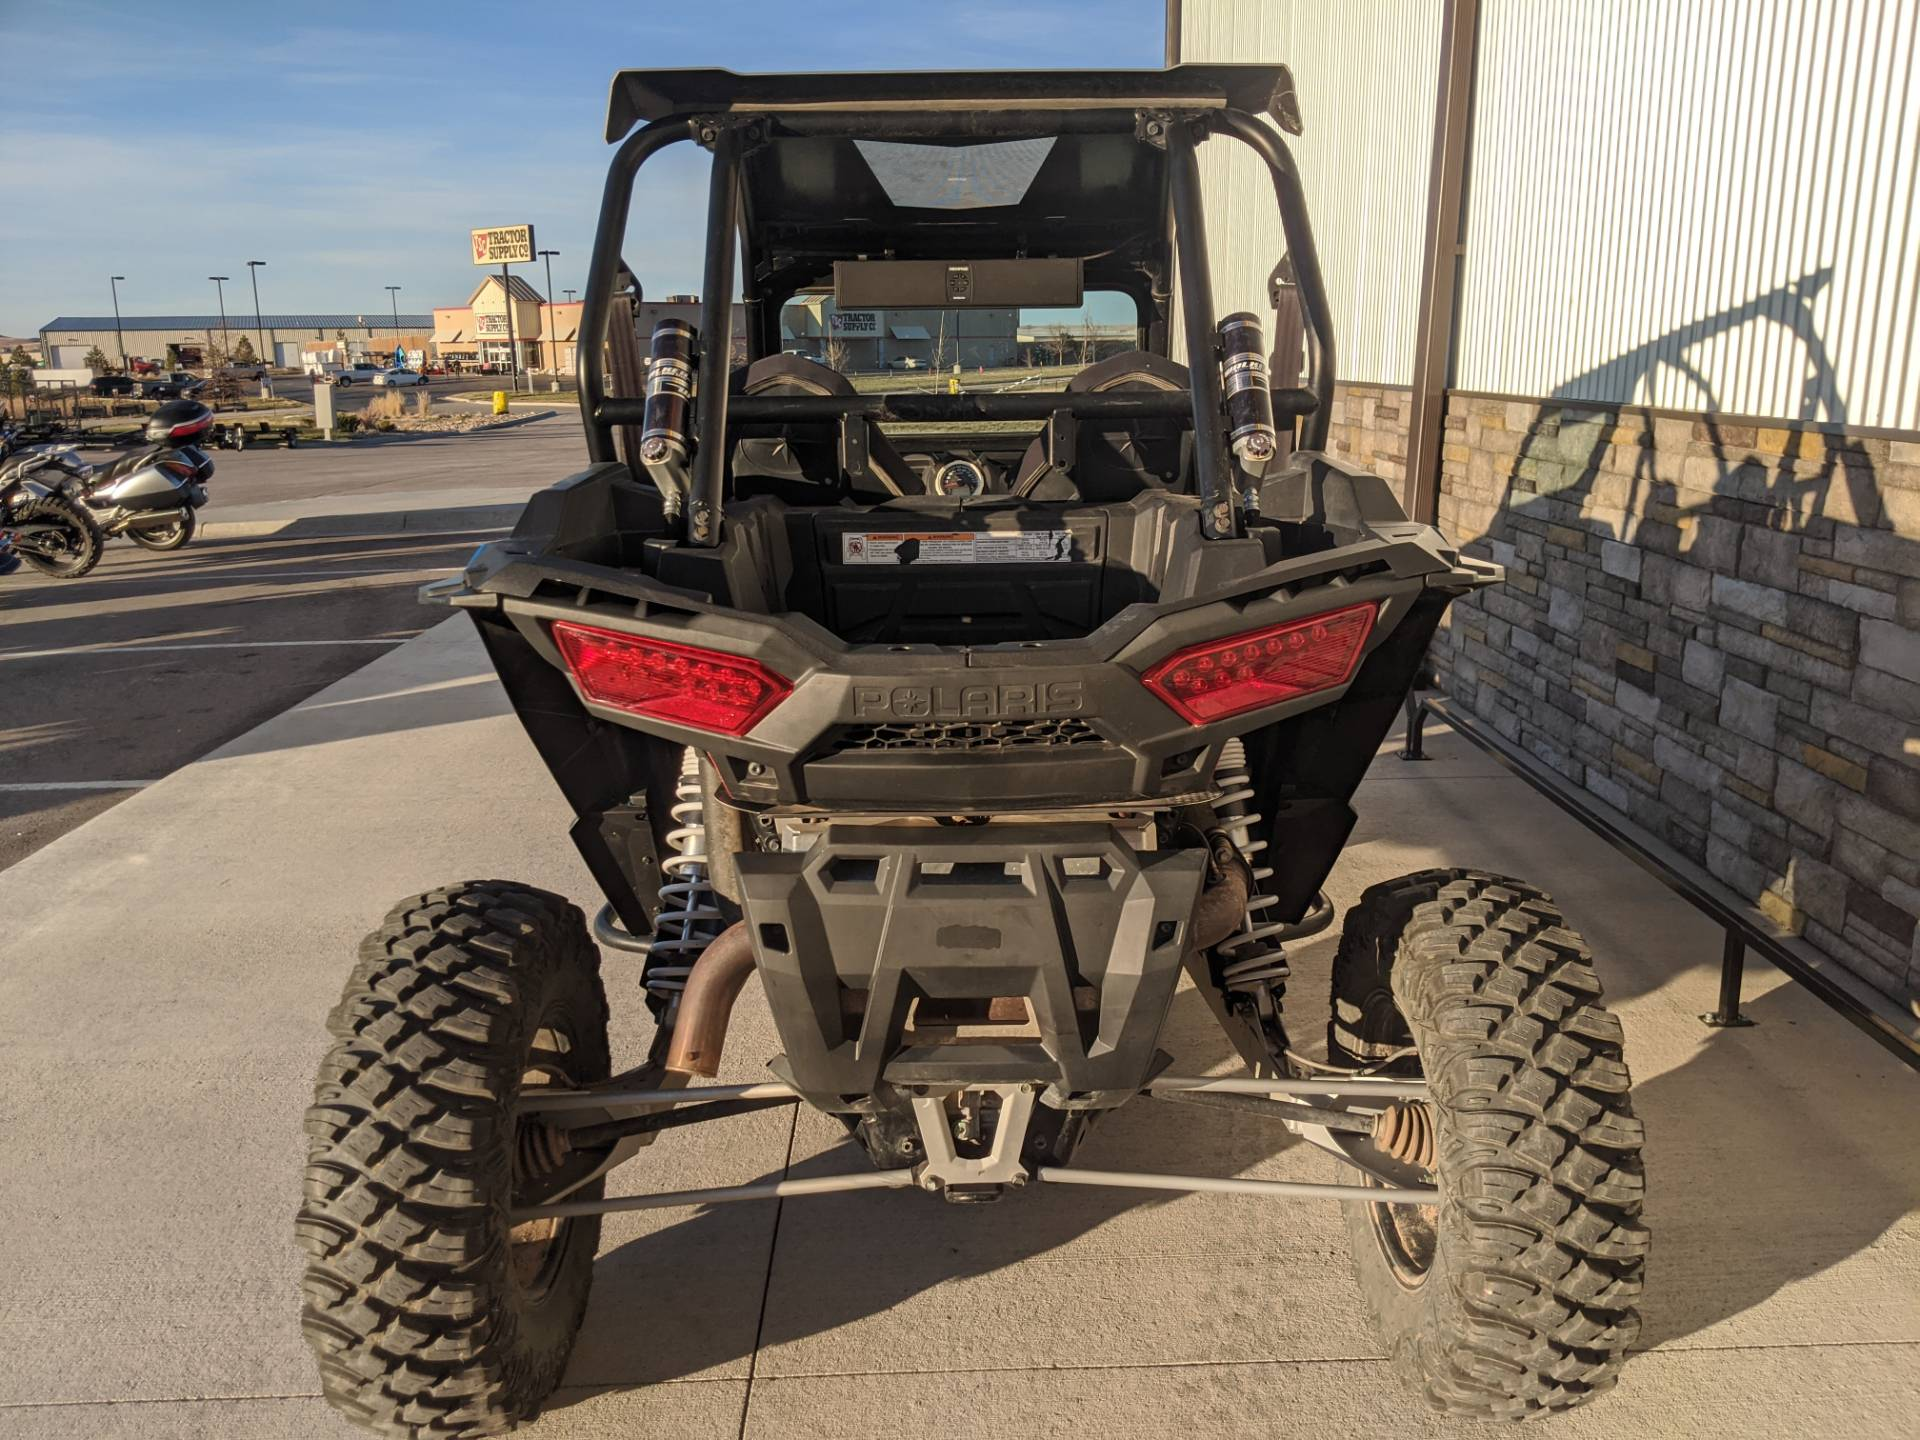 2016 Polaris RZR XP 1000 EPS in Rapid City, South Dakota - Photo 4